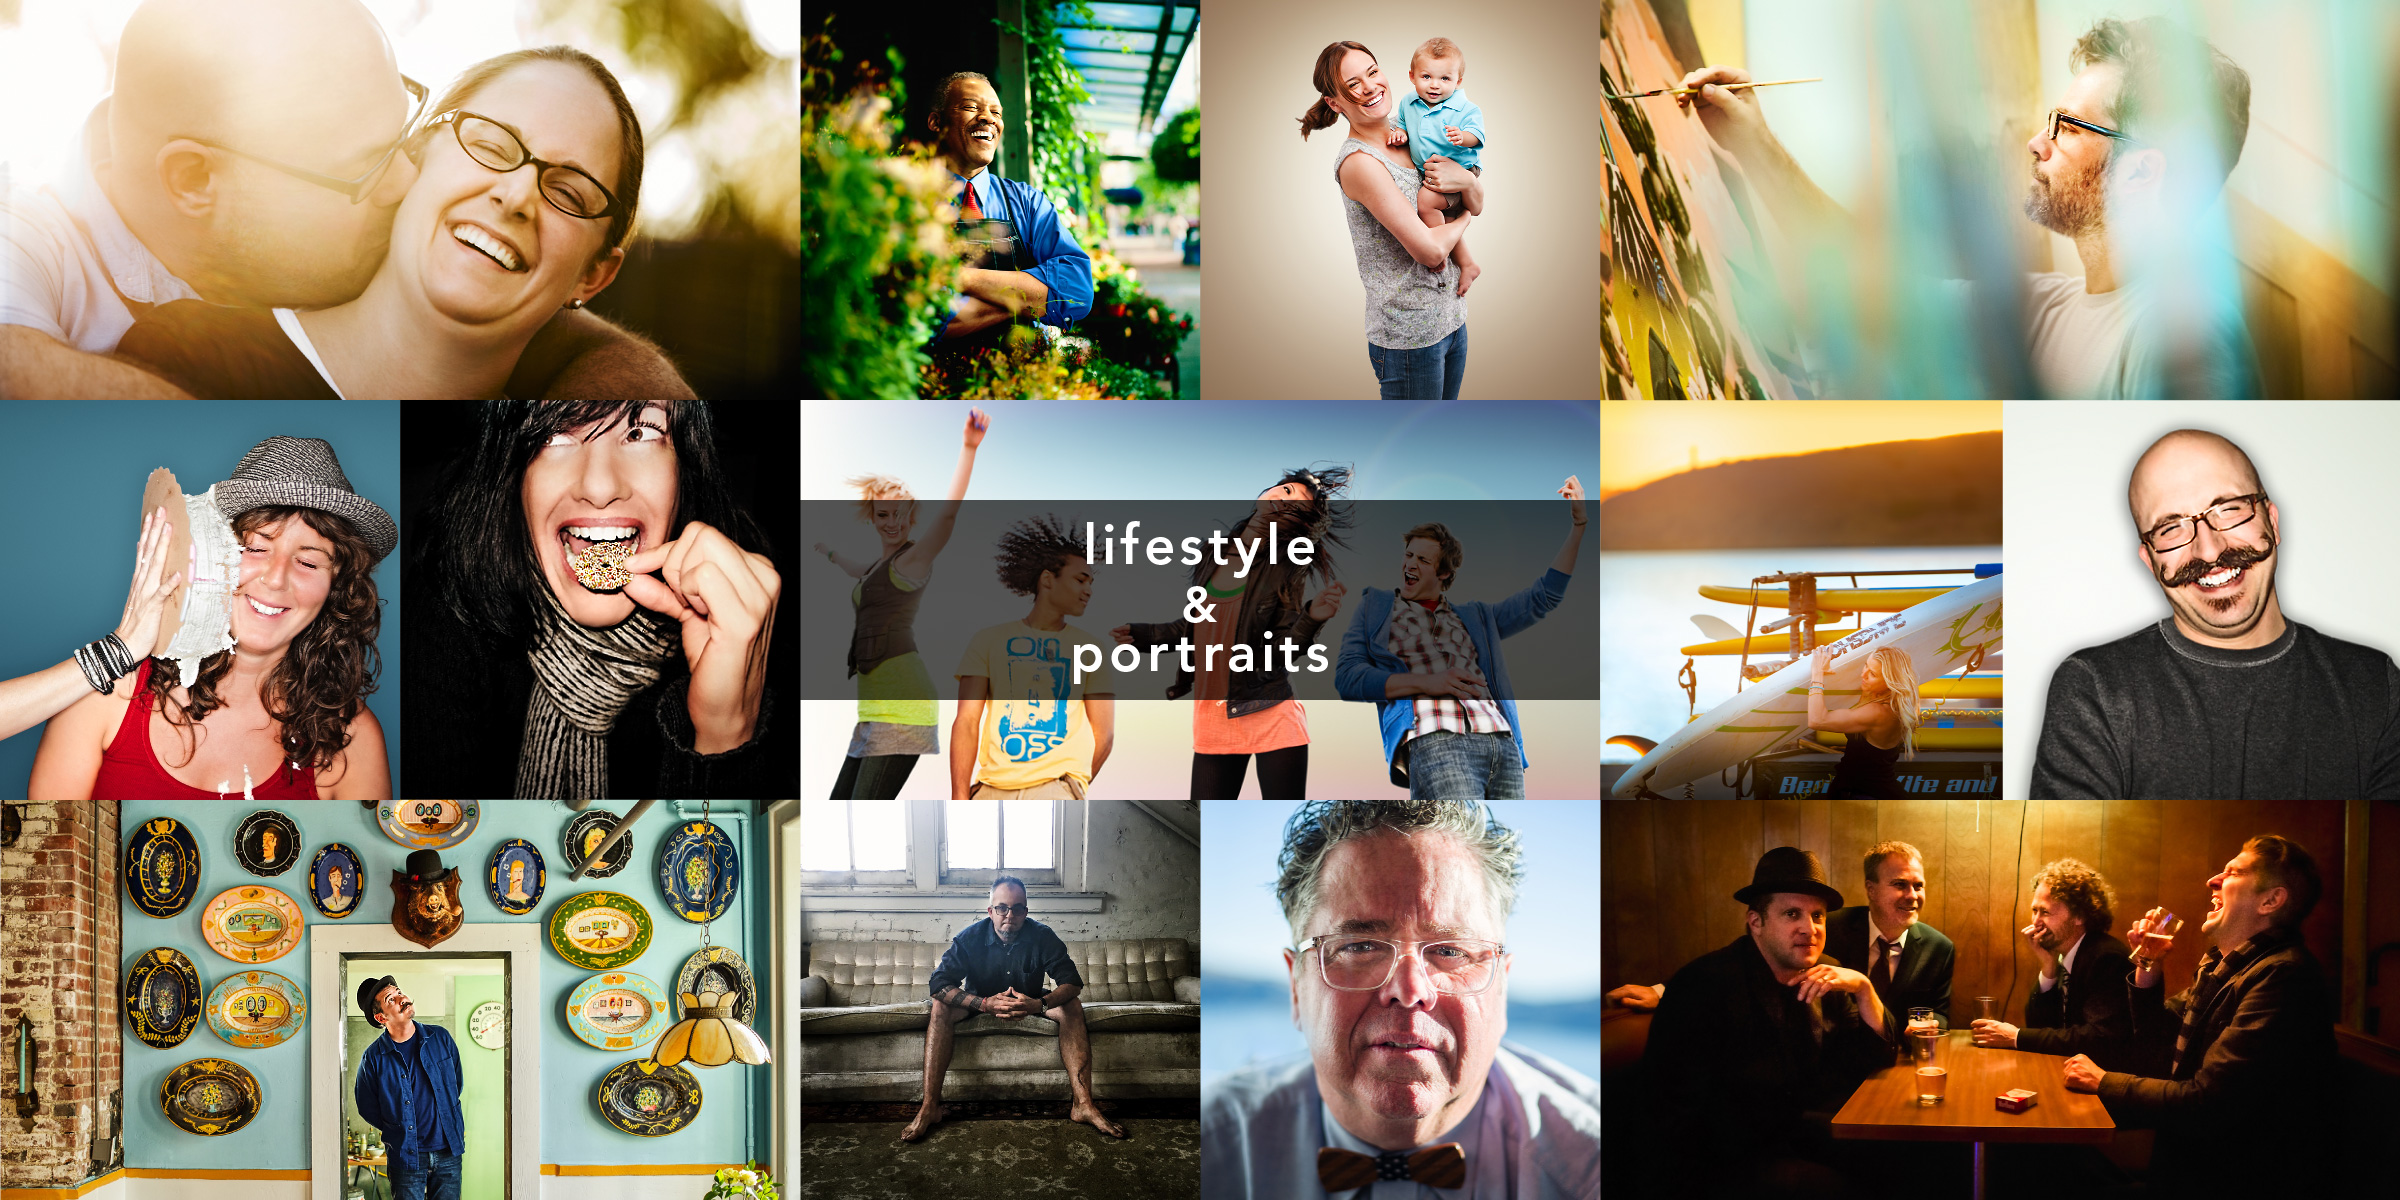 slide_as_grid_of_images-lifestyle_and_portraits_11